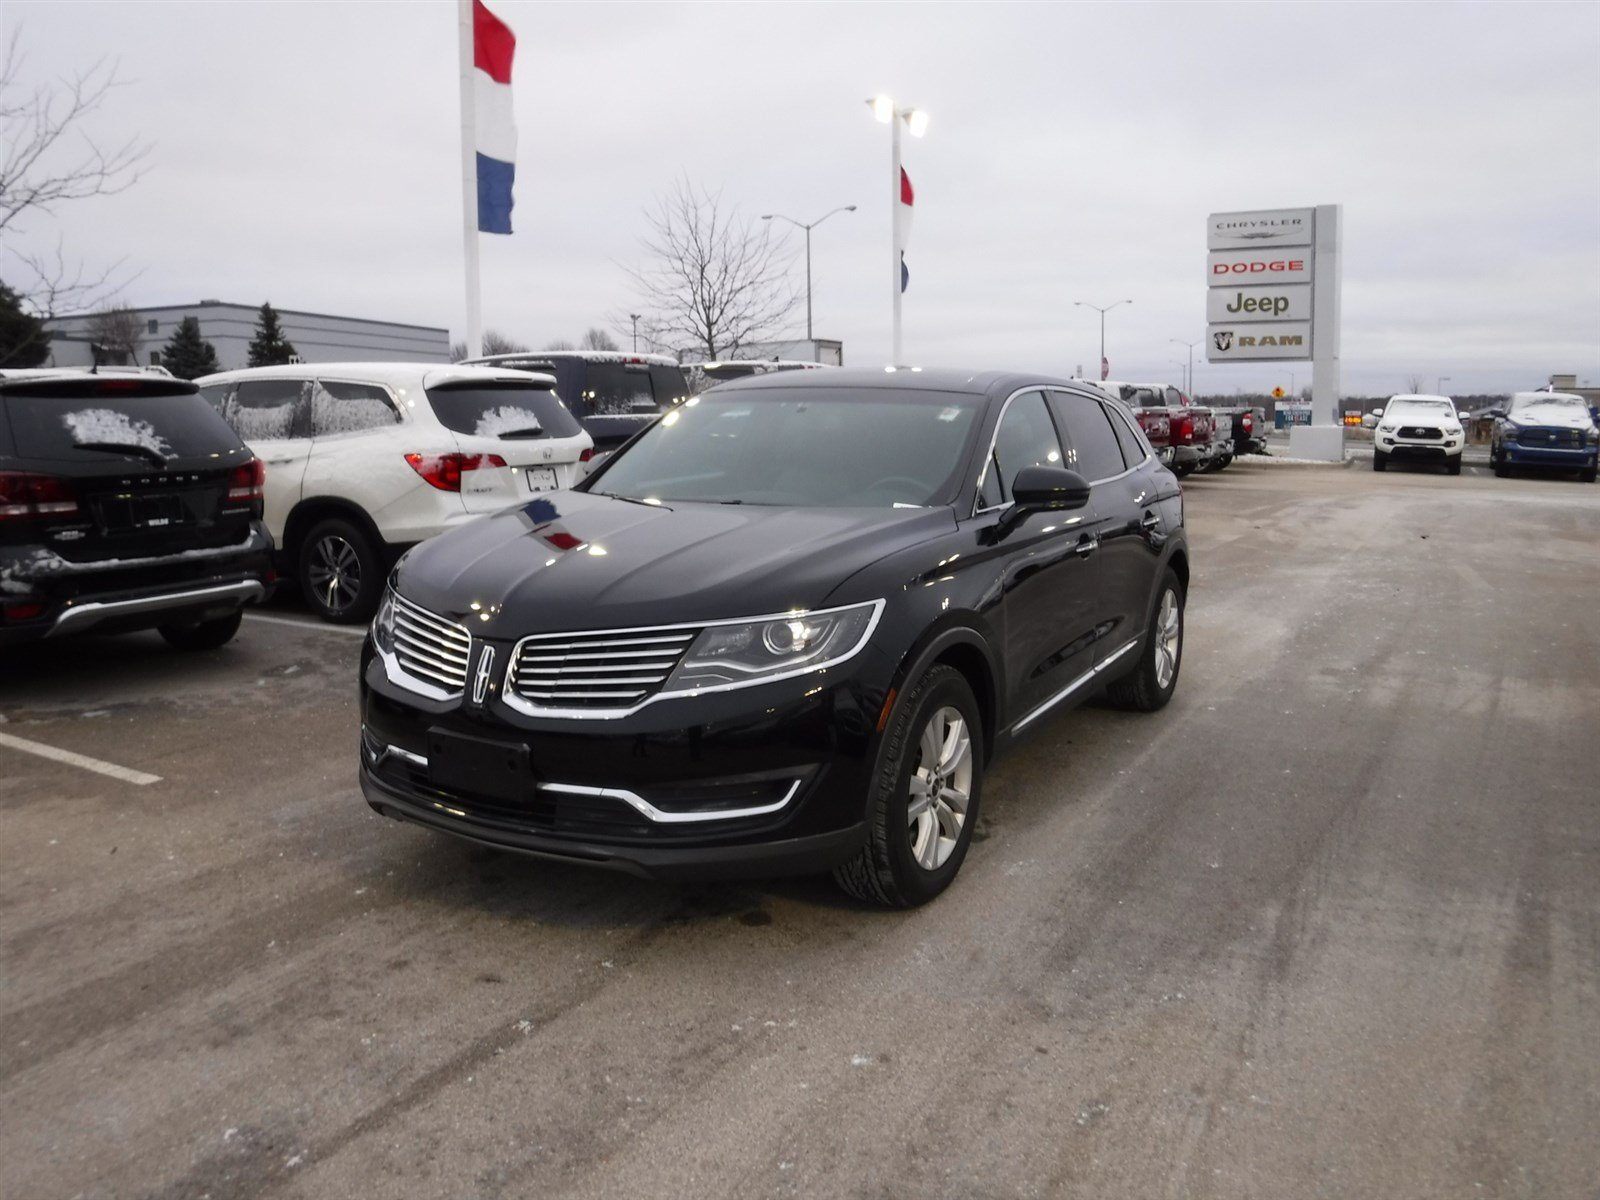 Pre Owned 2016 Lincoln MKX Premiere SUV in A